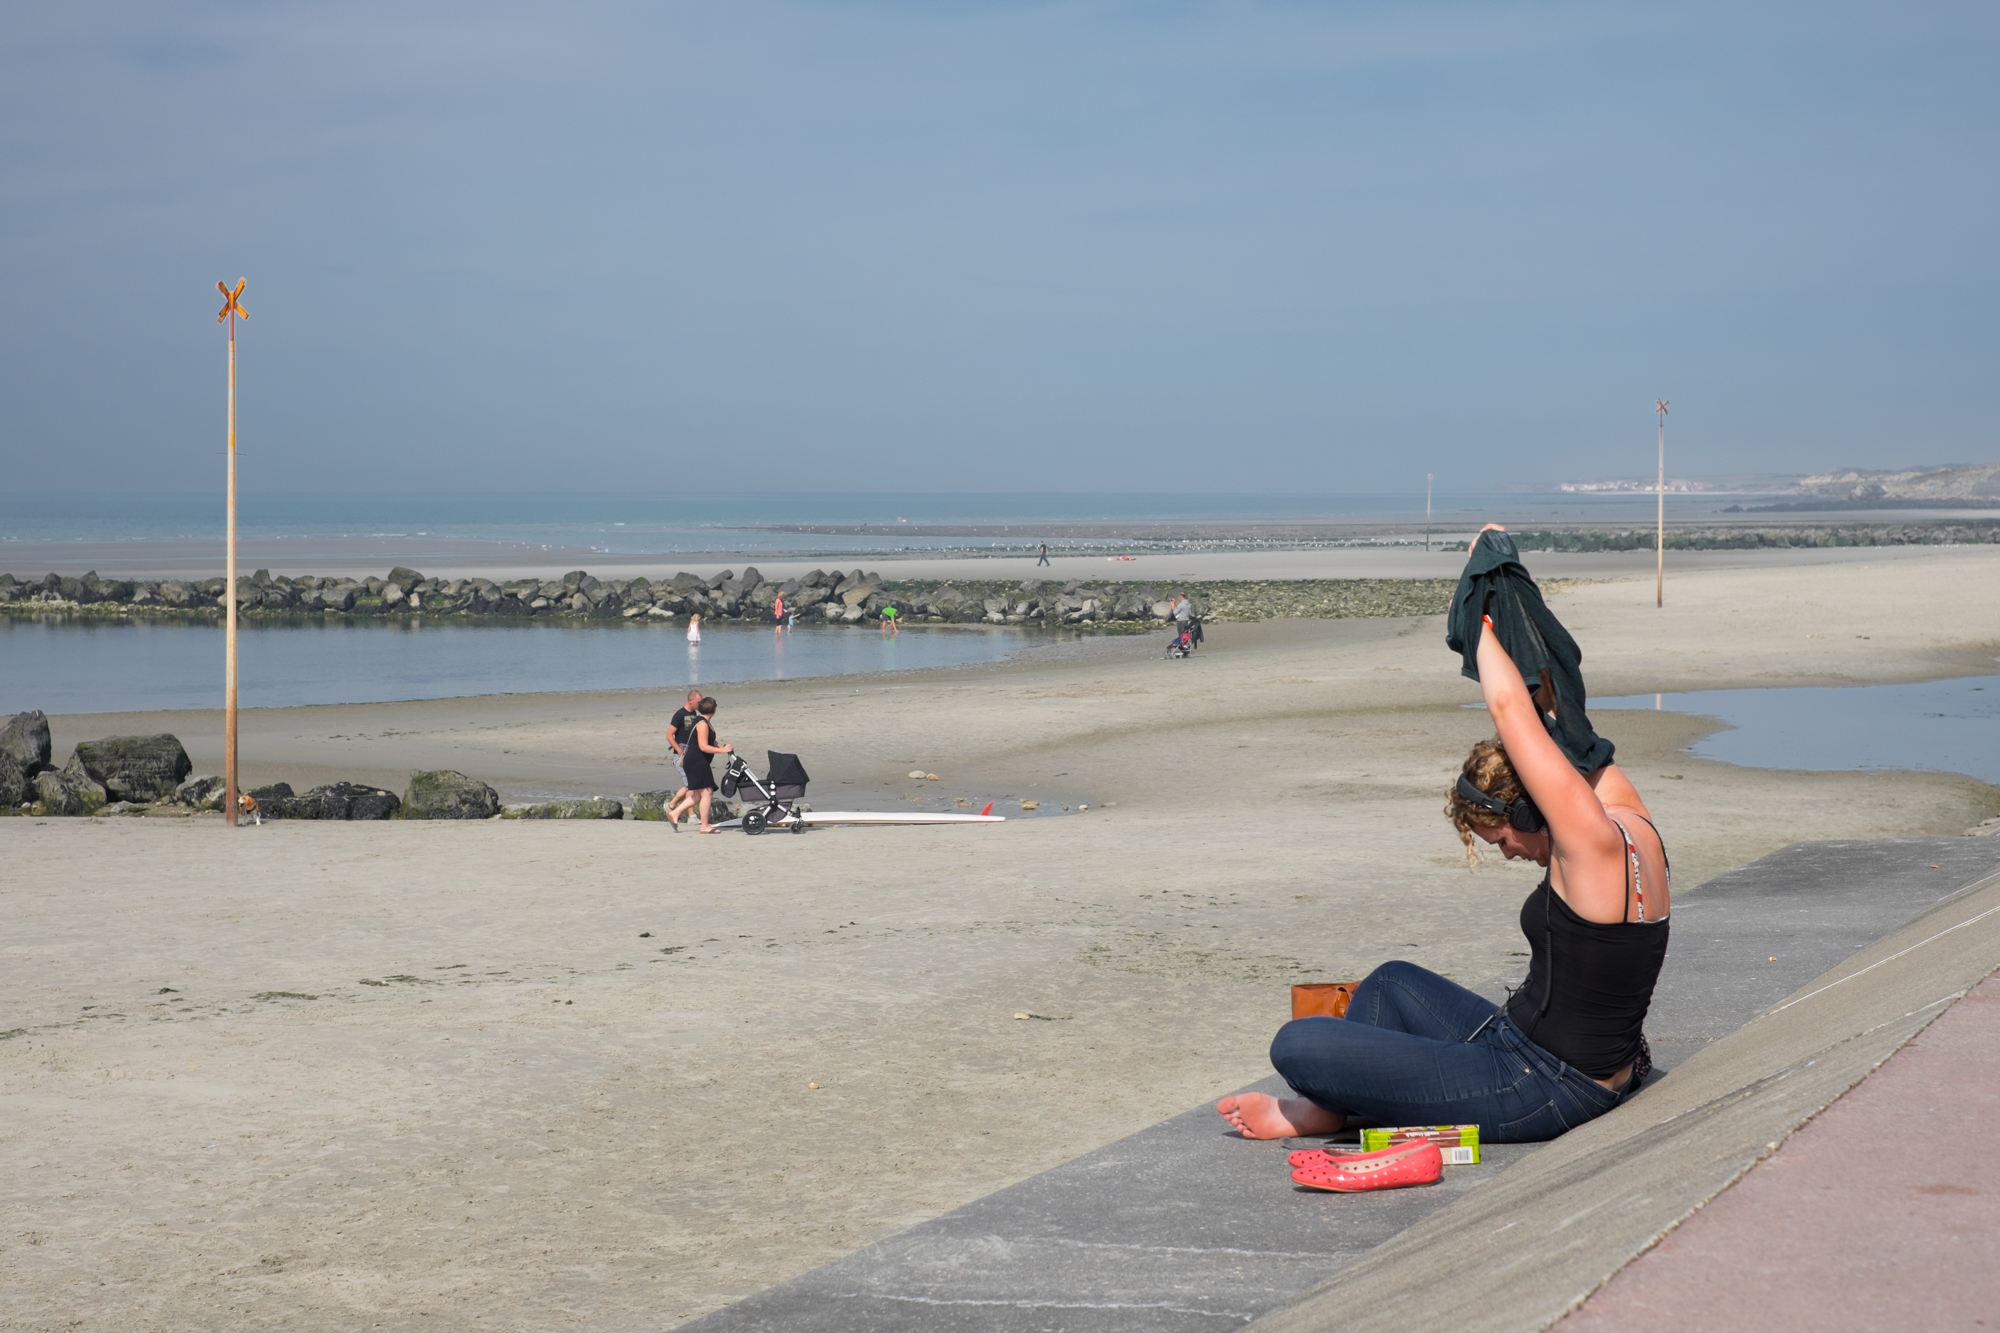 Wimereux, France, September 2014